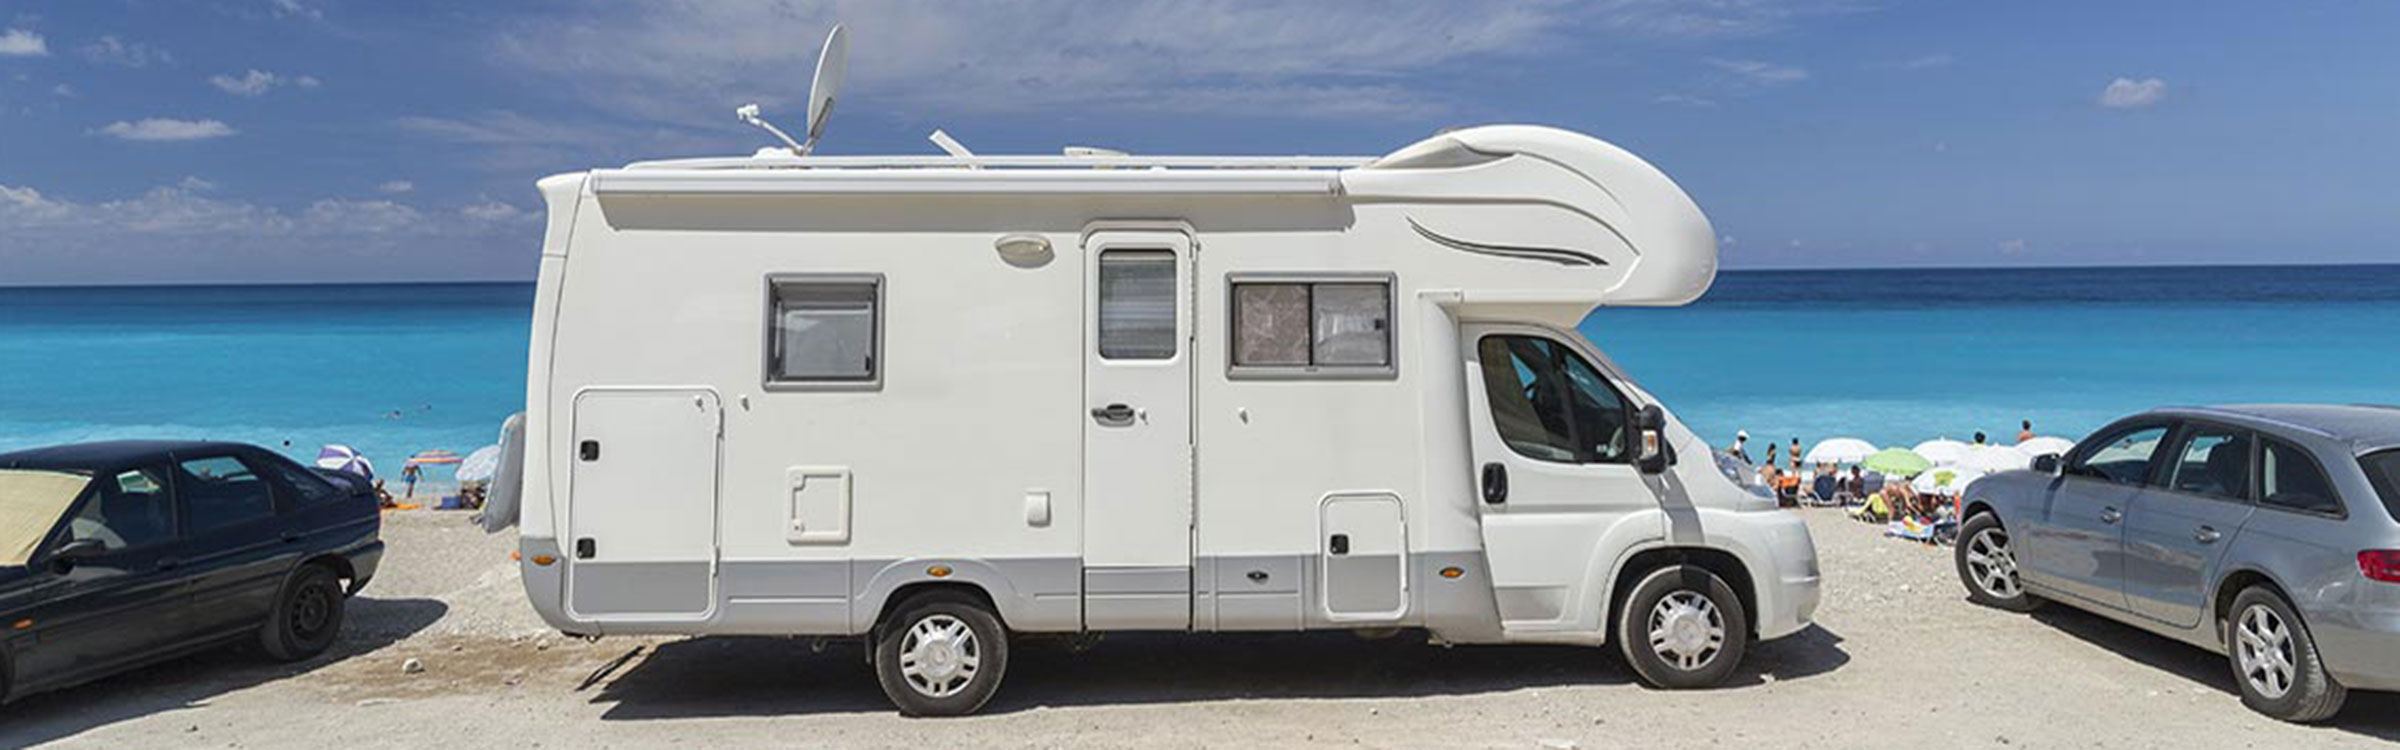 Mobilhome algemeen